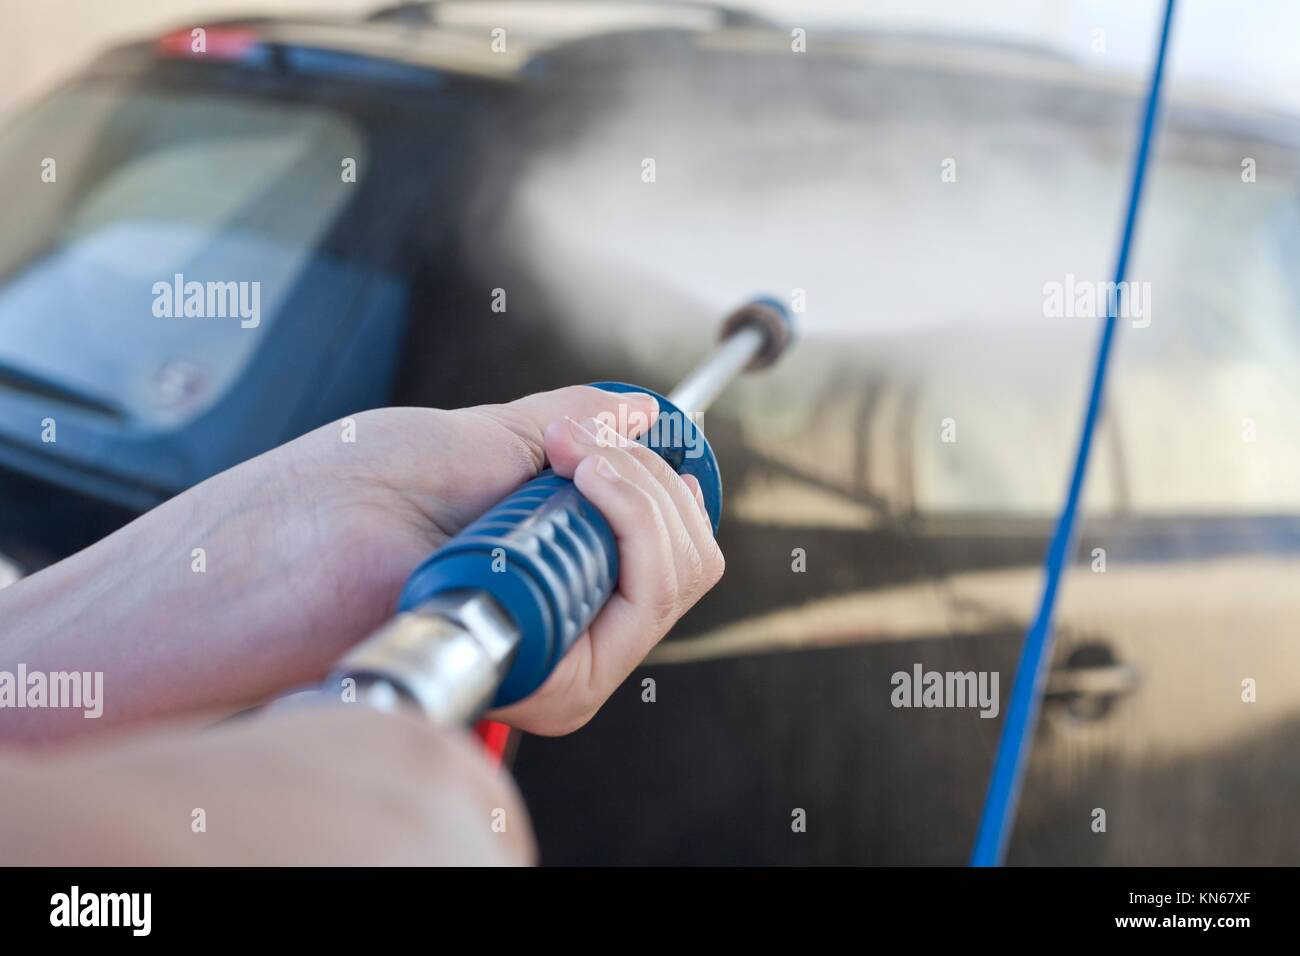 Washing with pressure gun my new black car. - Stock Image